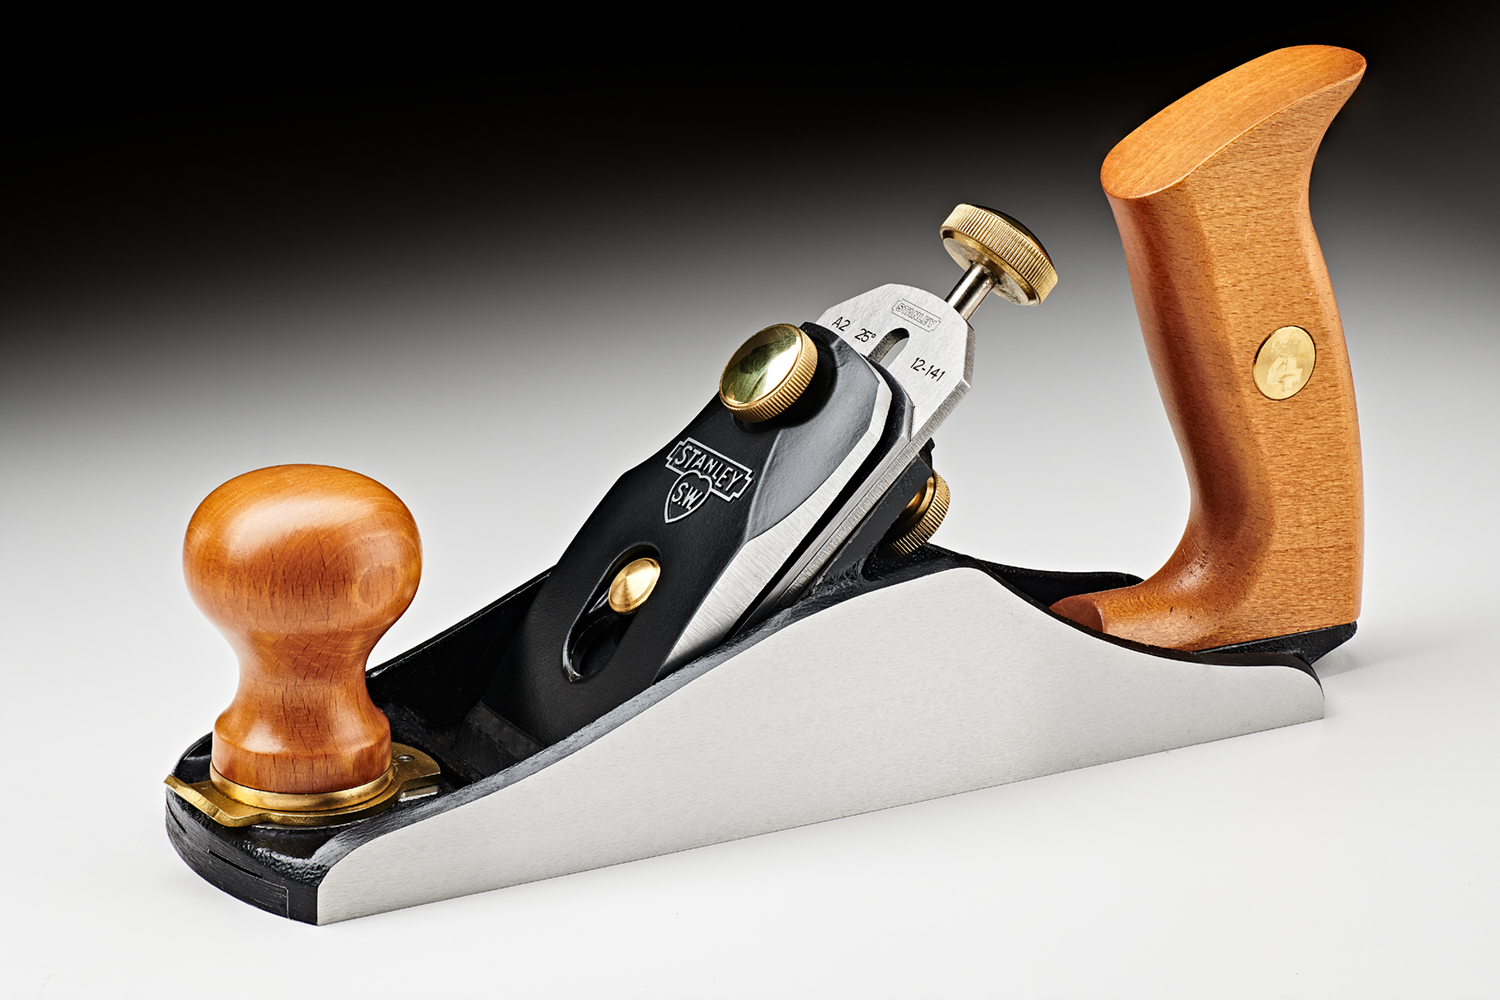 4 Smoothing Bench Plane Stanley 12-136 No